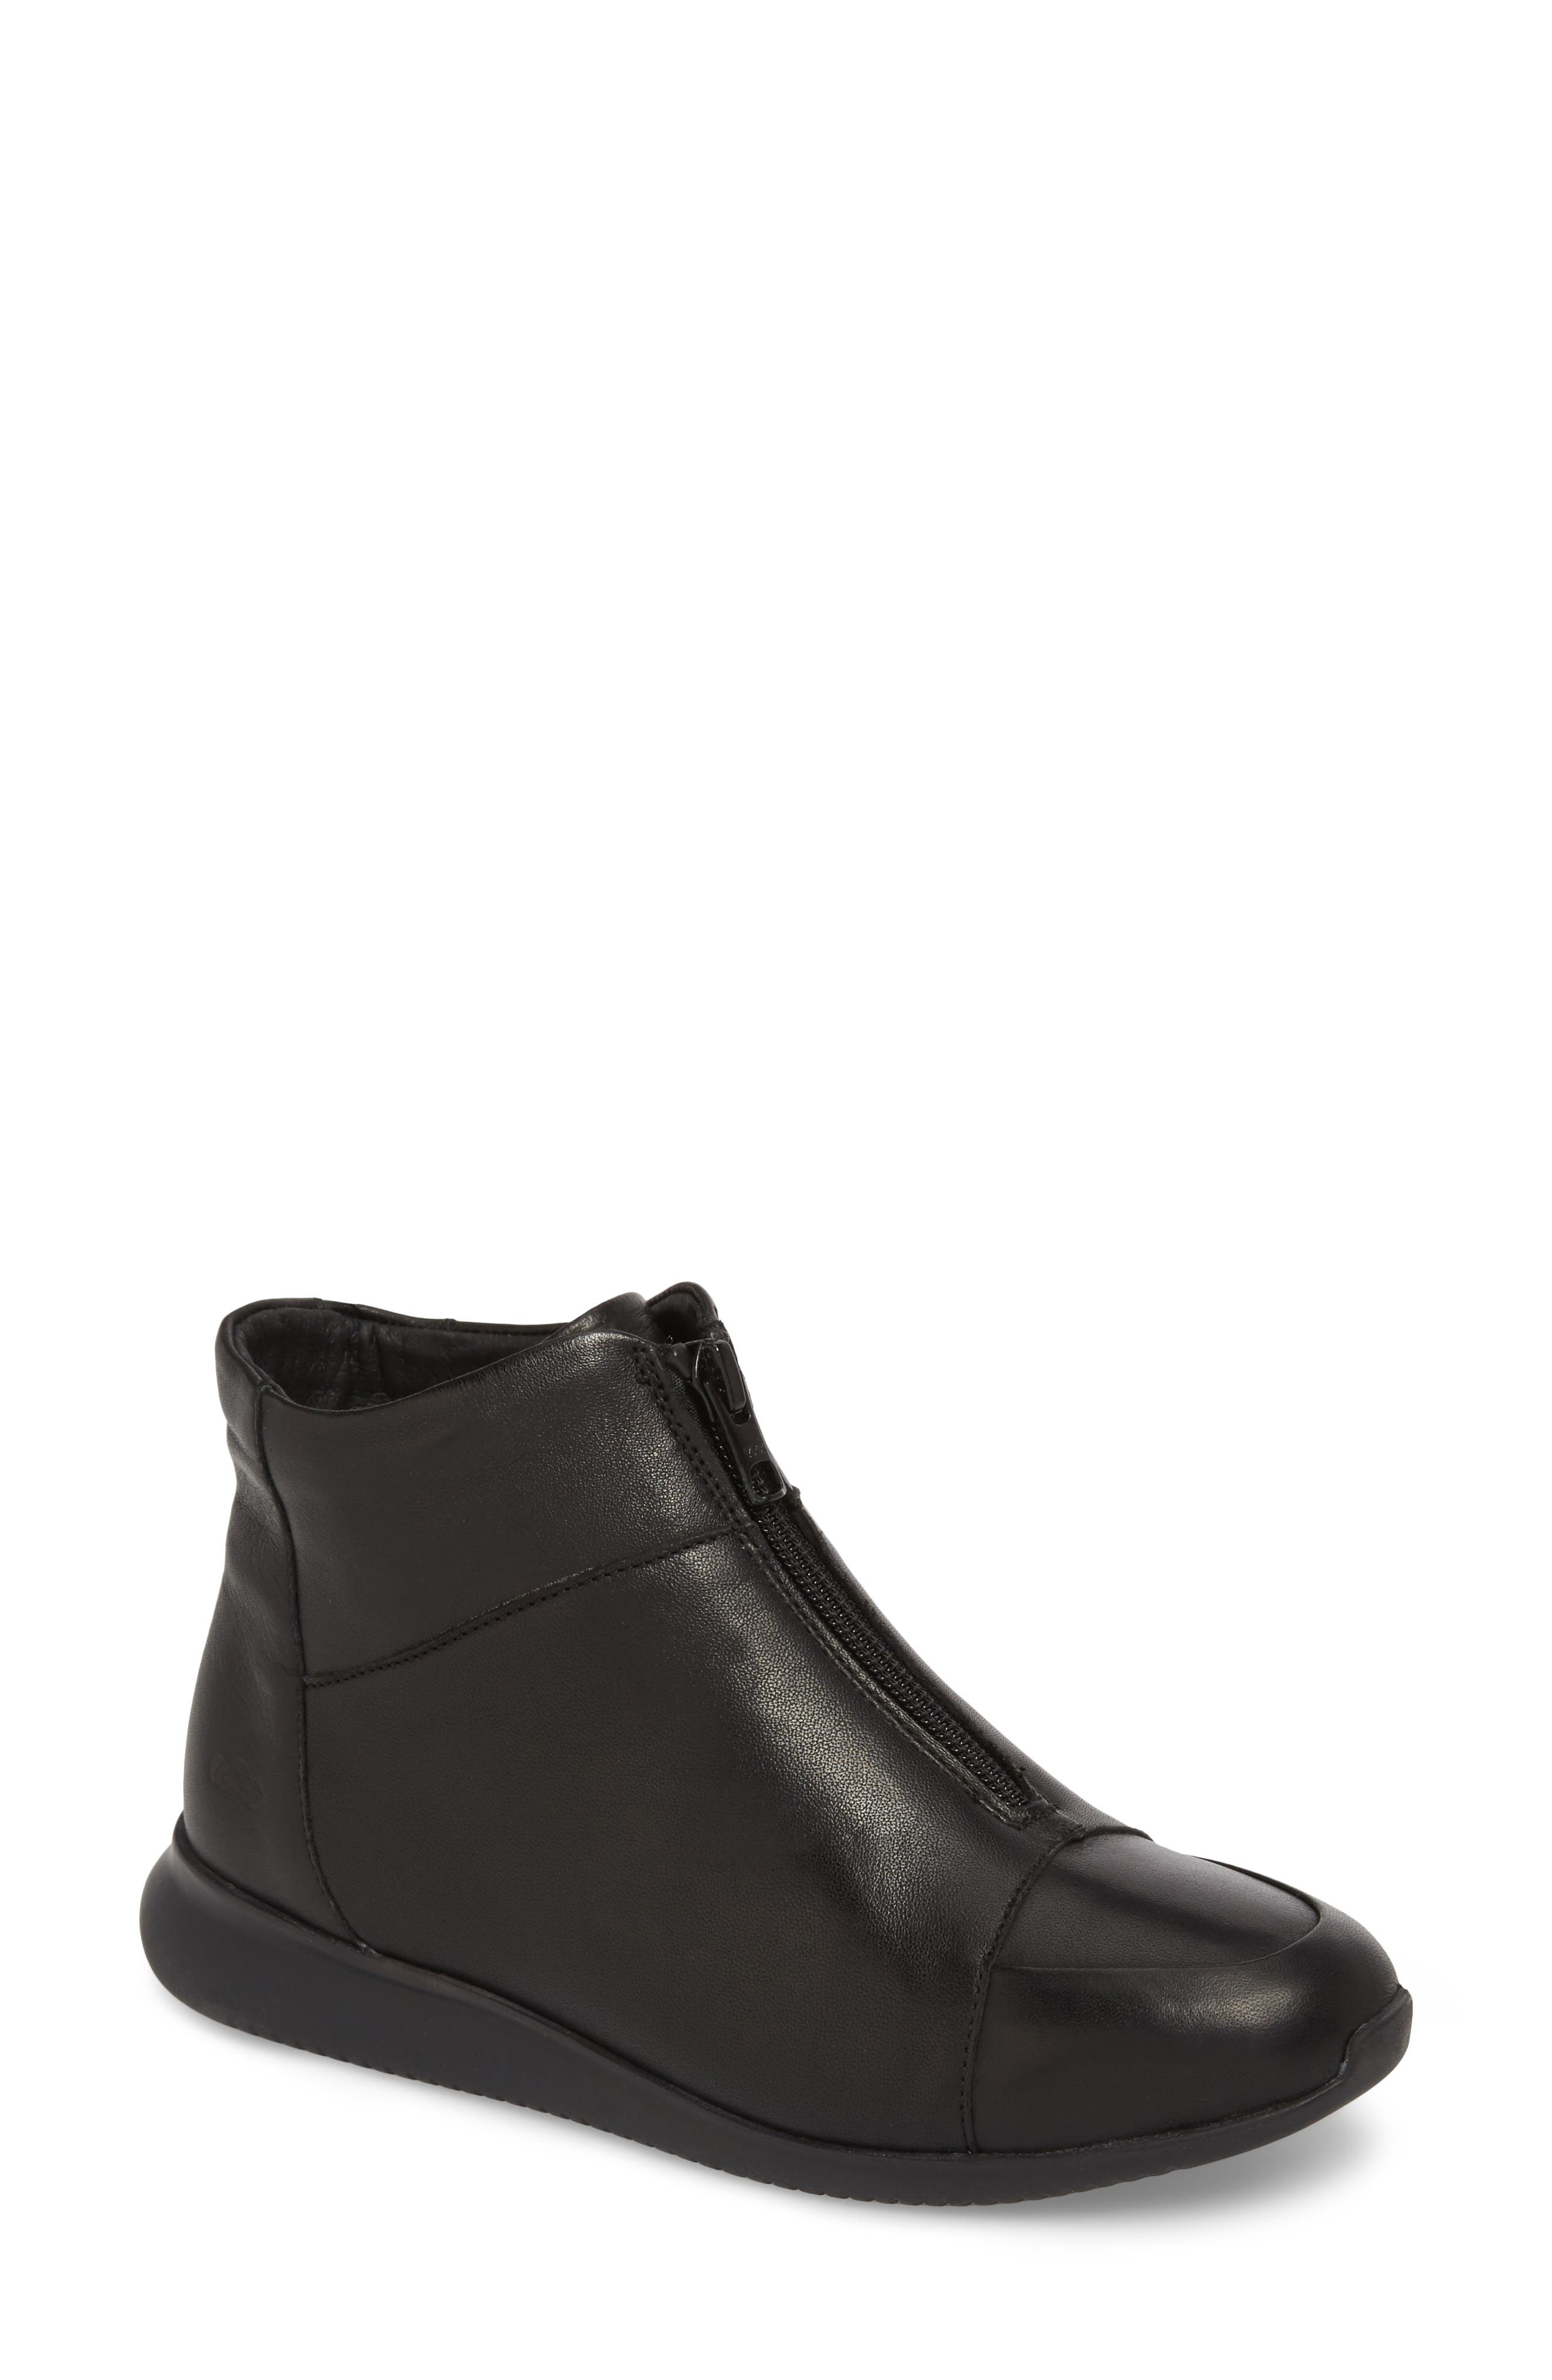 Roy Wool Lined Cap Toe Bootie,                             Main thumbnail 1, color,                             BLACK LEATHER